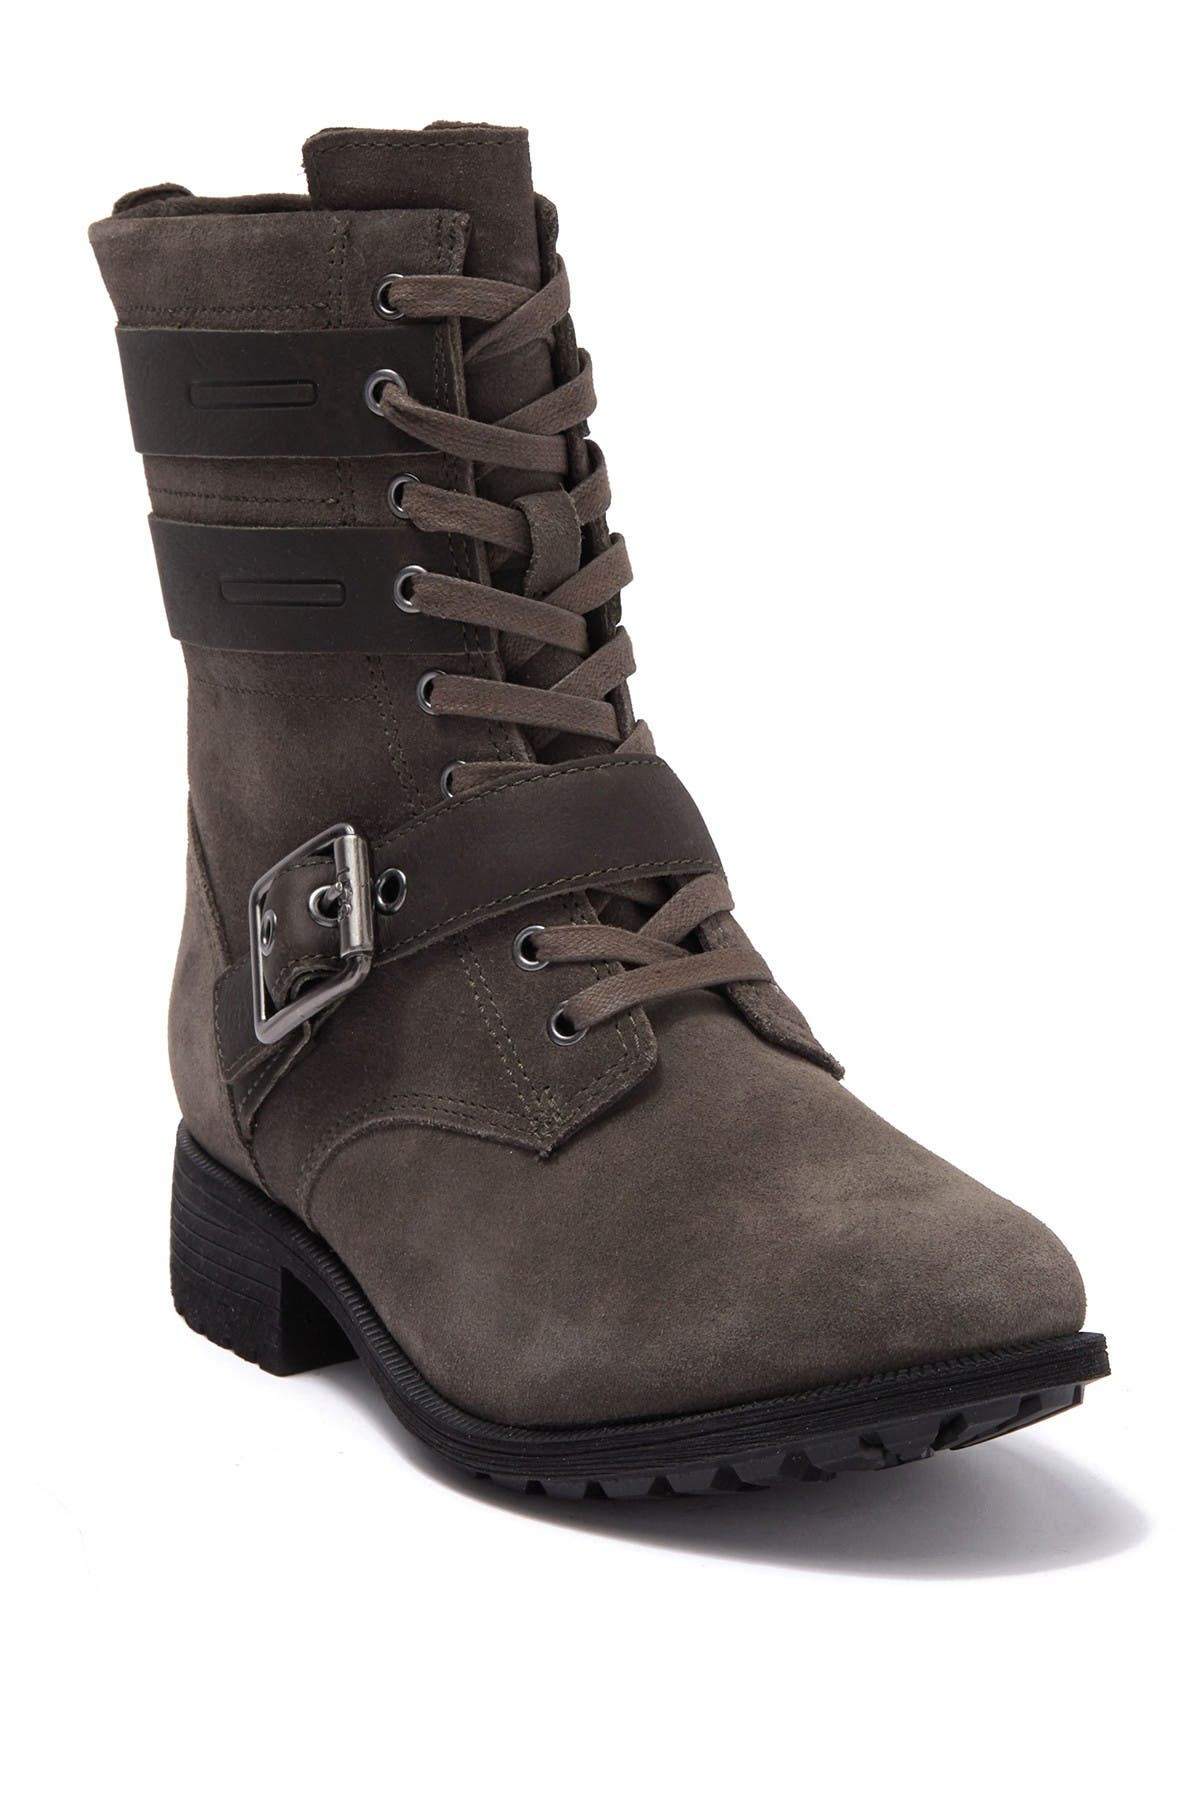 UGG   Zia Lace-Up Boot   Nordstrom Rack